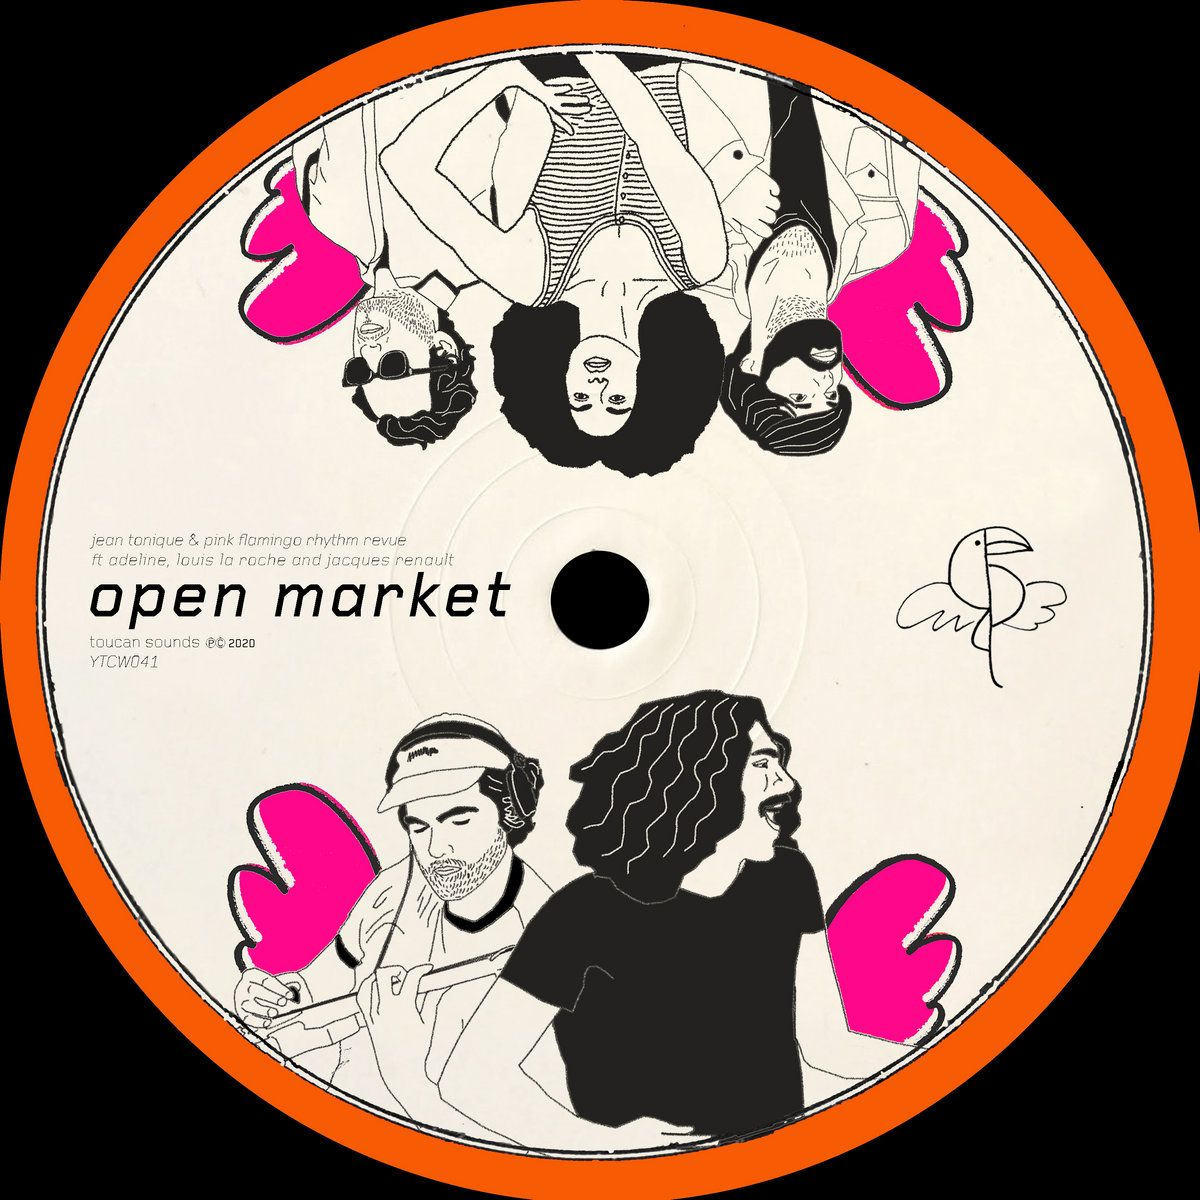 Jean Tonique & Pink Flamingo Rhythm Revue - Open Market